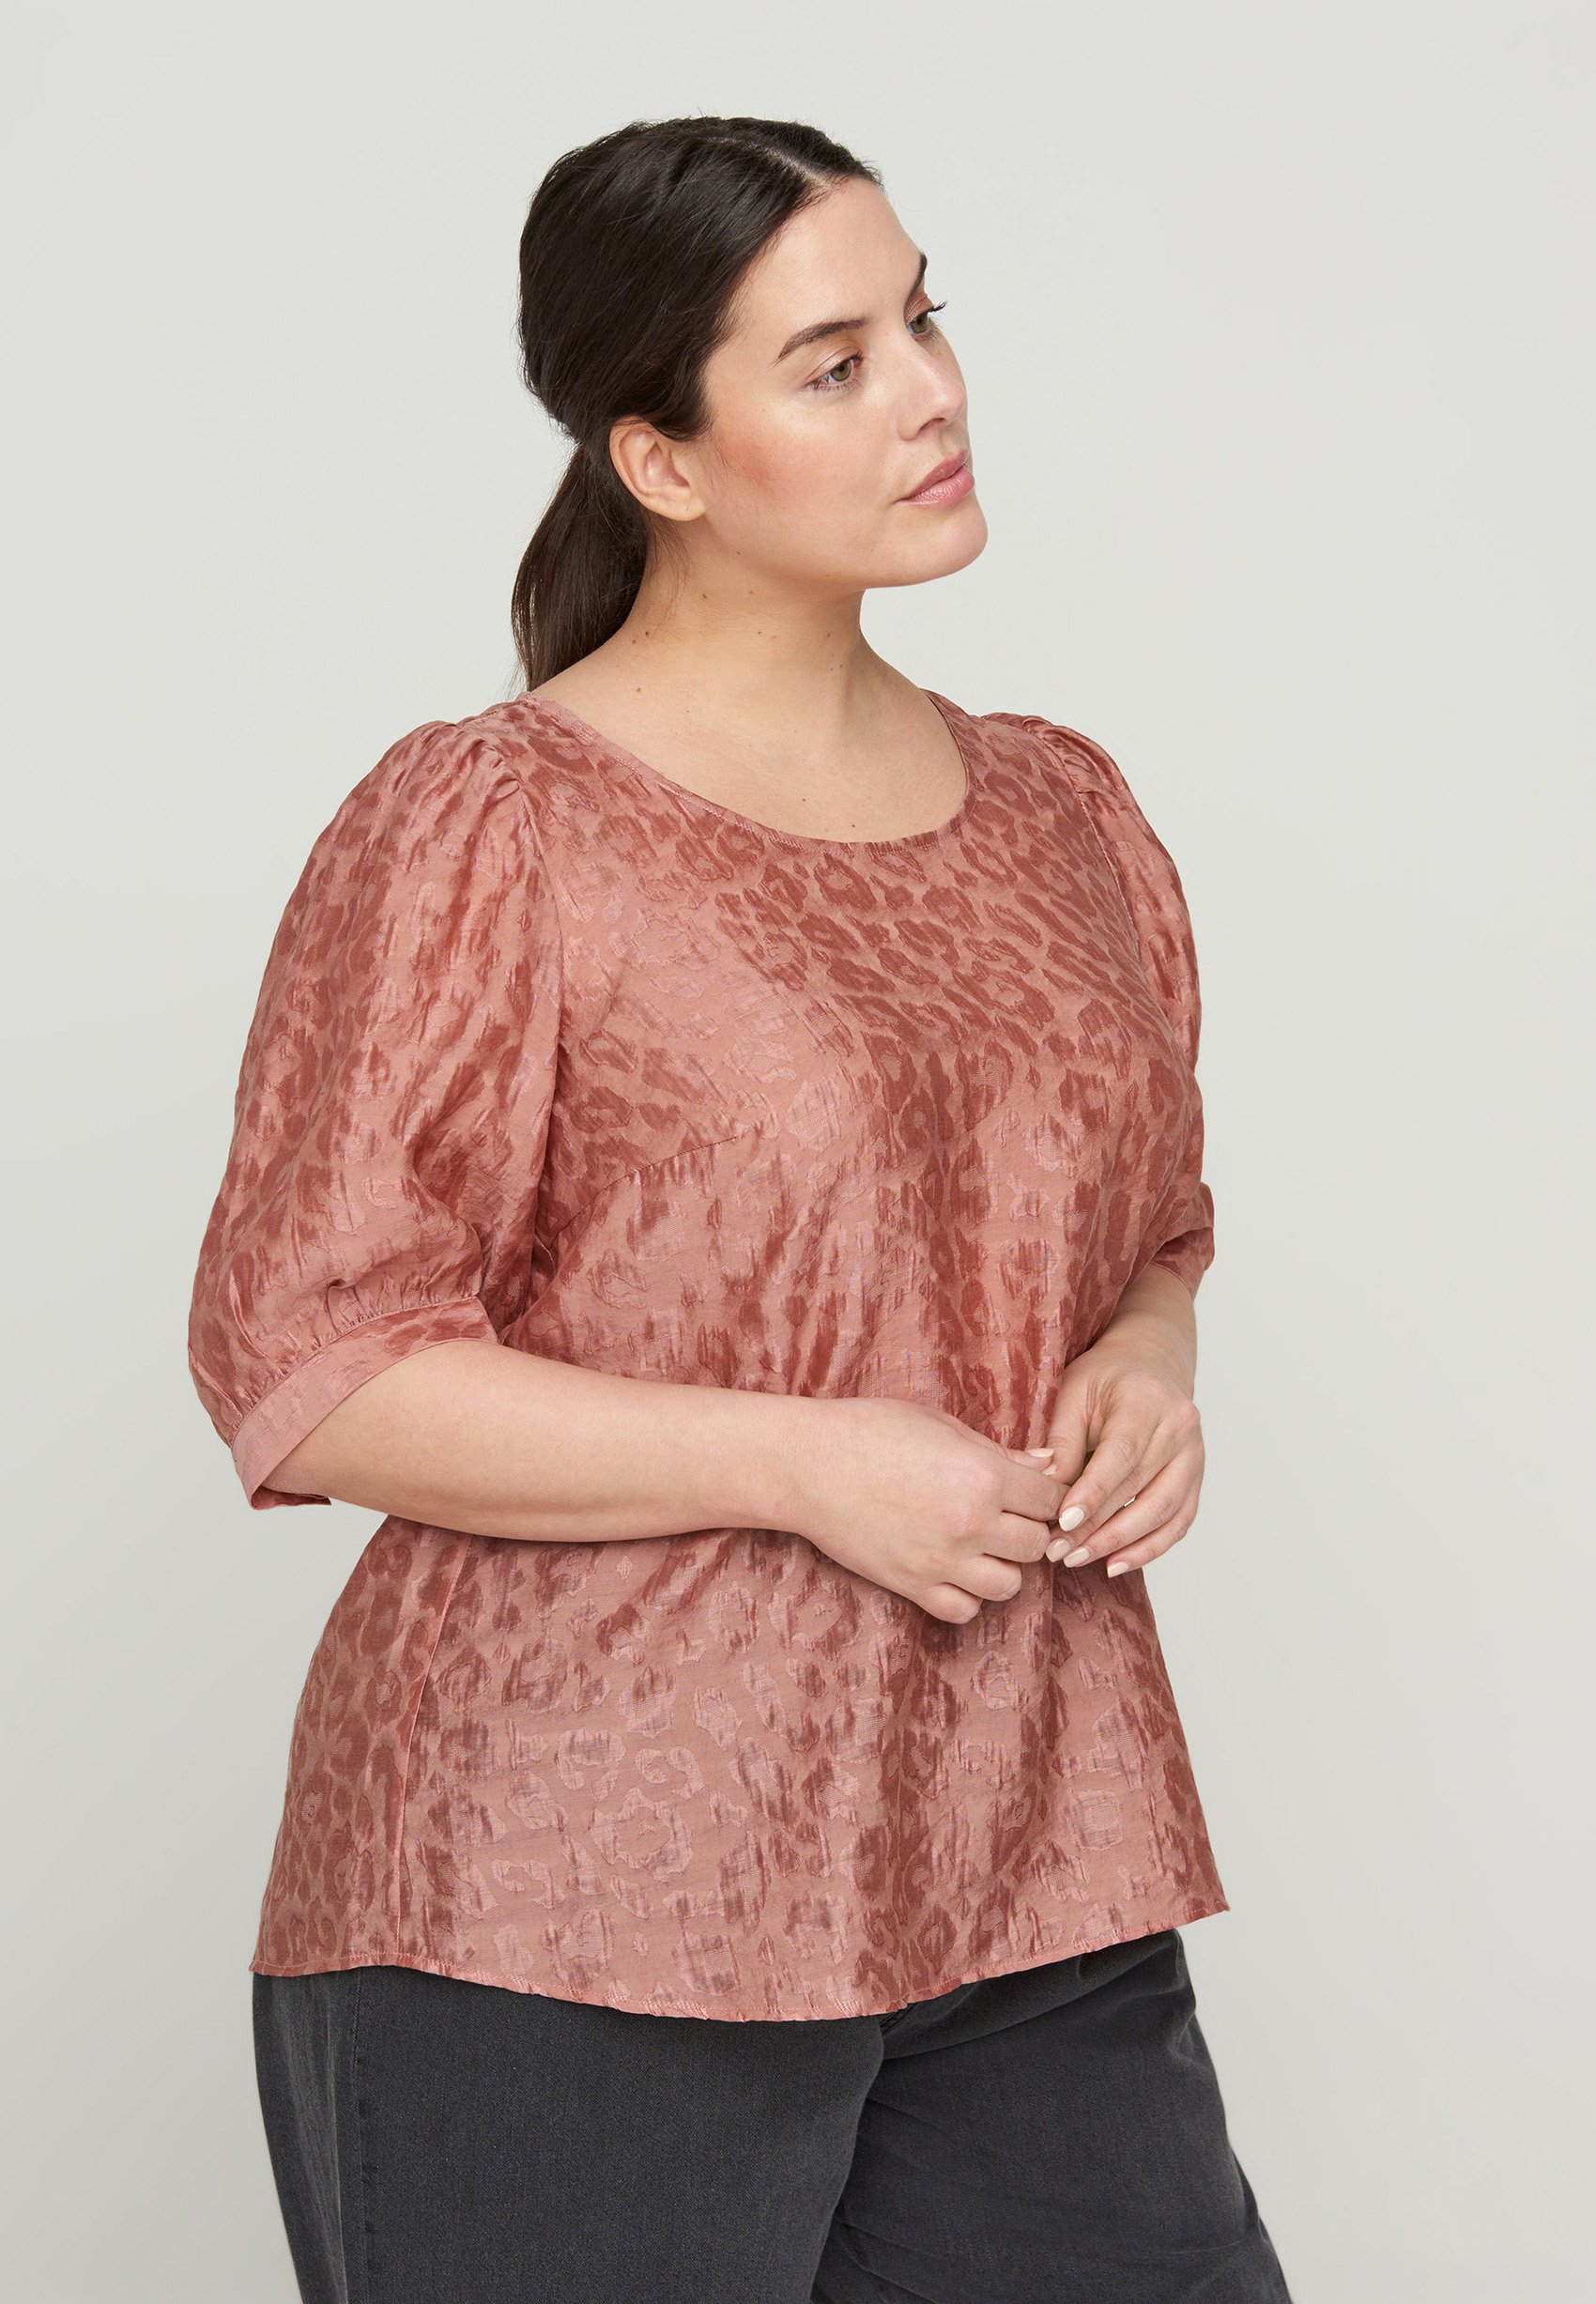 Femme TONE-IN-TONE MUSTER - Blouse